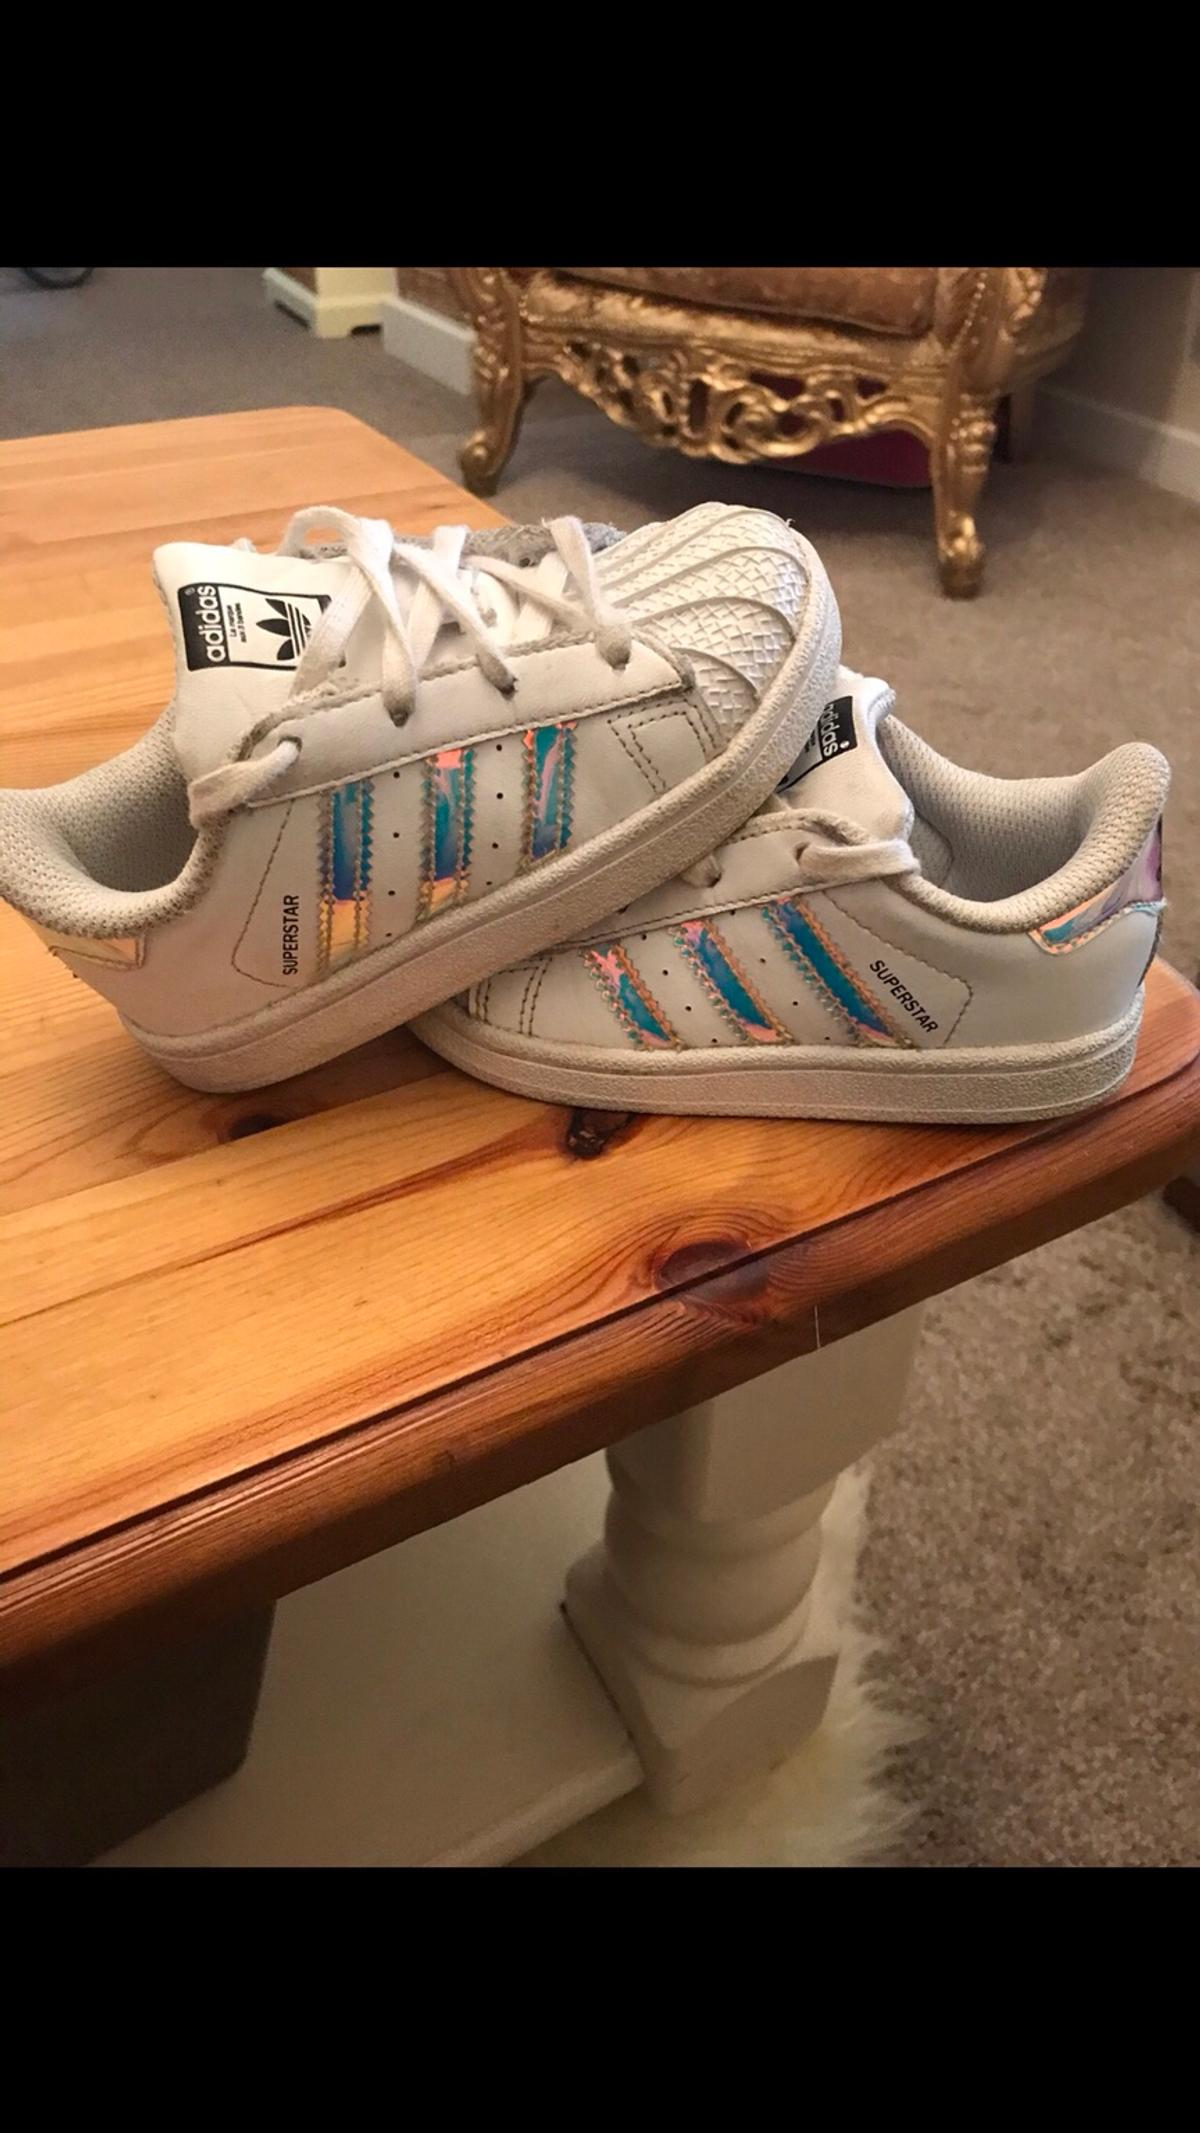 detailing e0571 f2b7c Infant Adidas superstars size 7 in SL6 Green for £15.00 for ...